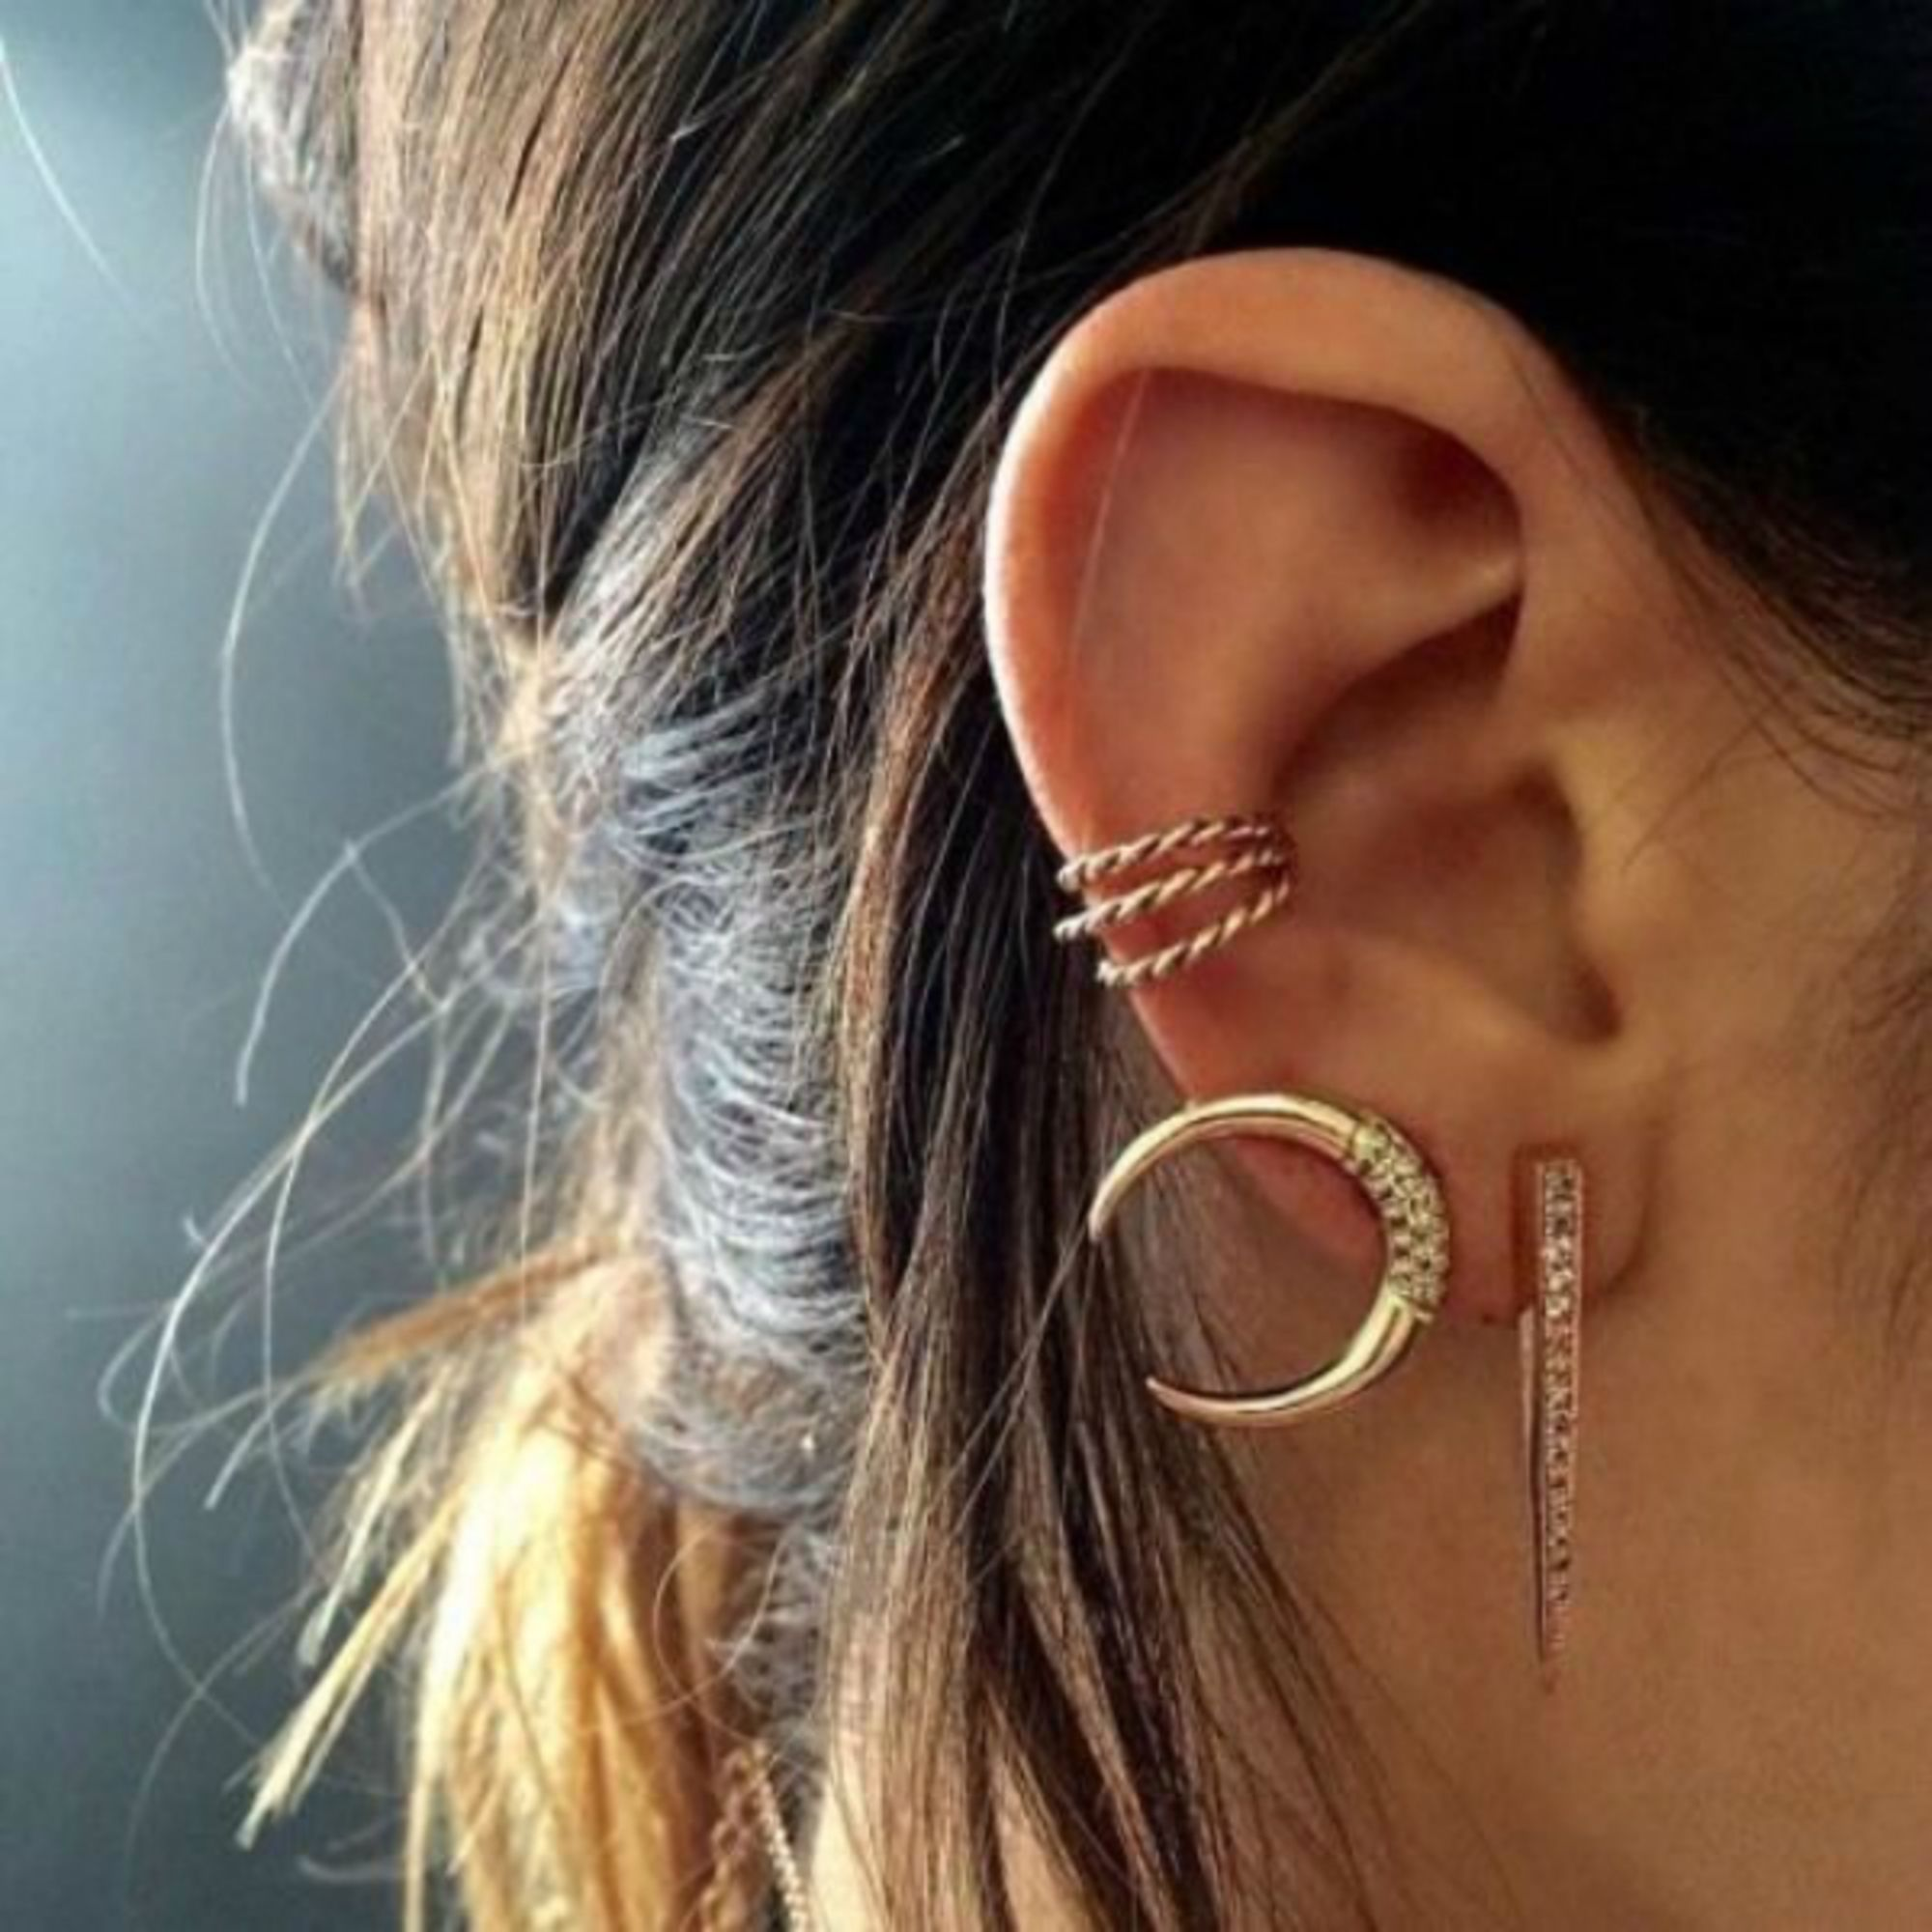 Body piercing near me   Things No One Told Me About My New Cartilage Piercing  Pinterest